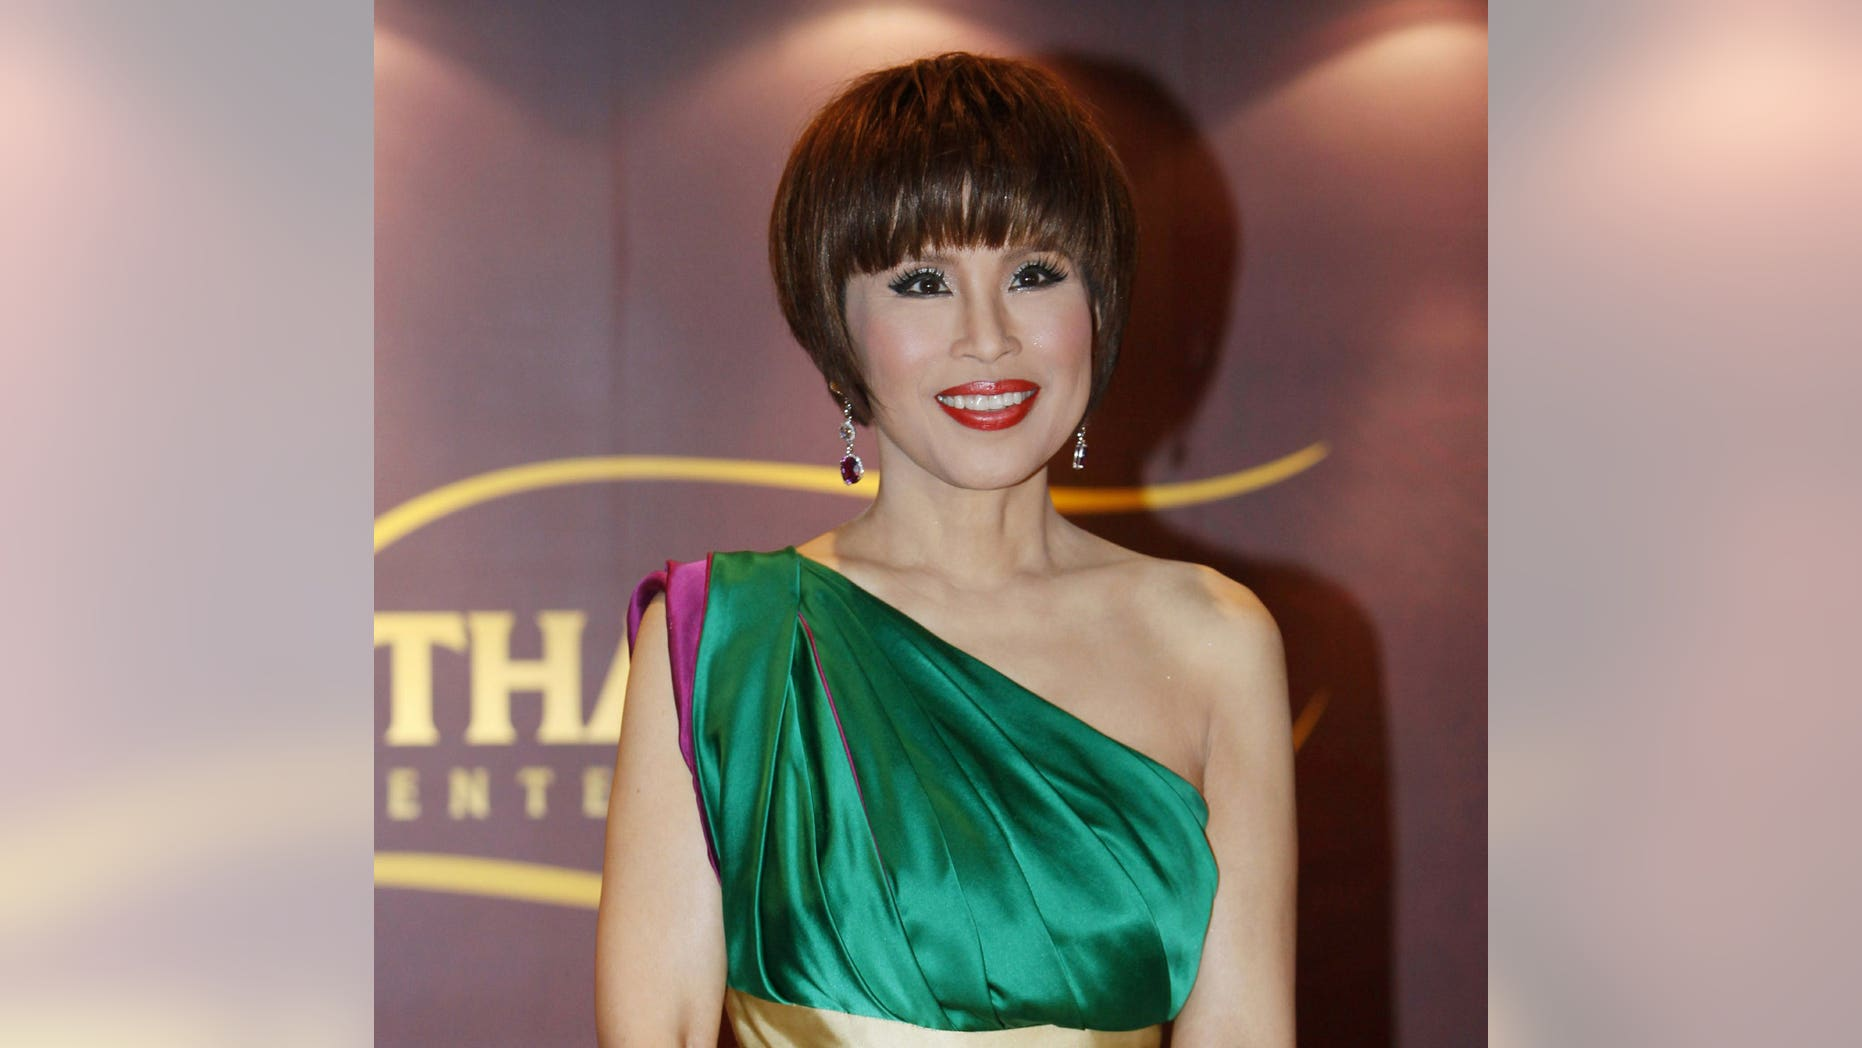 In this March 24, 2010, file photo, Thai Princess Ubolratana attends the Thai Gala Night in Hong Kong. Thai Raksa Chart party selected Friday, Feb. 8, 2019, the princess as its nominee to serve as the next prime minister, upending tradition that the royal palace plays no public role in politics and upsetting all predictions about what may happen in the March election.